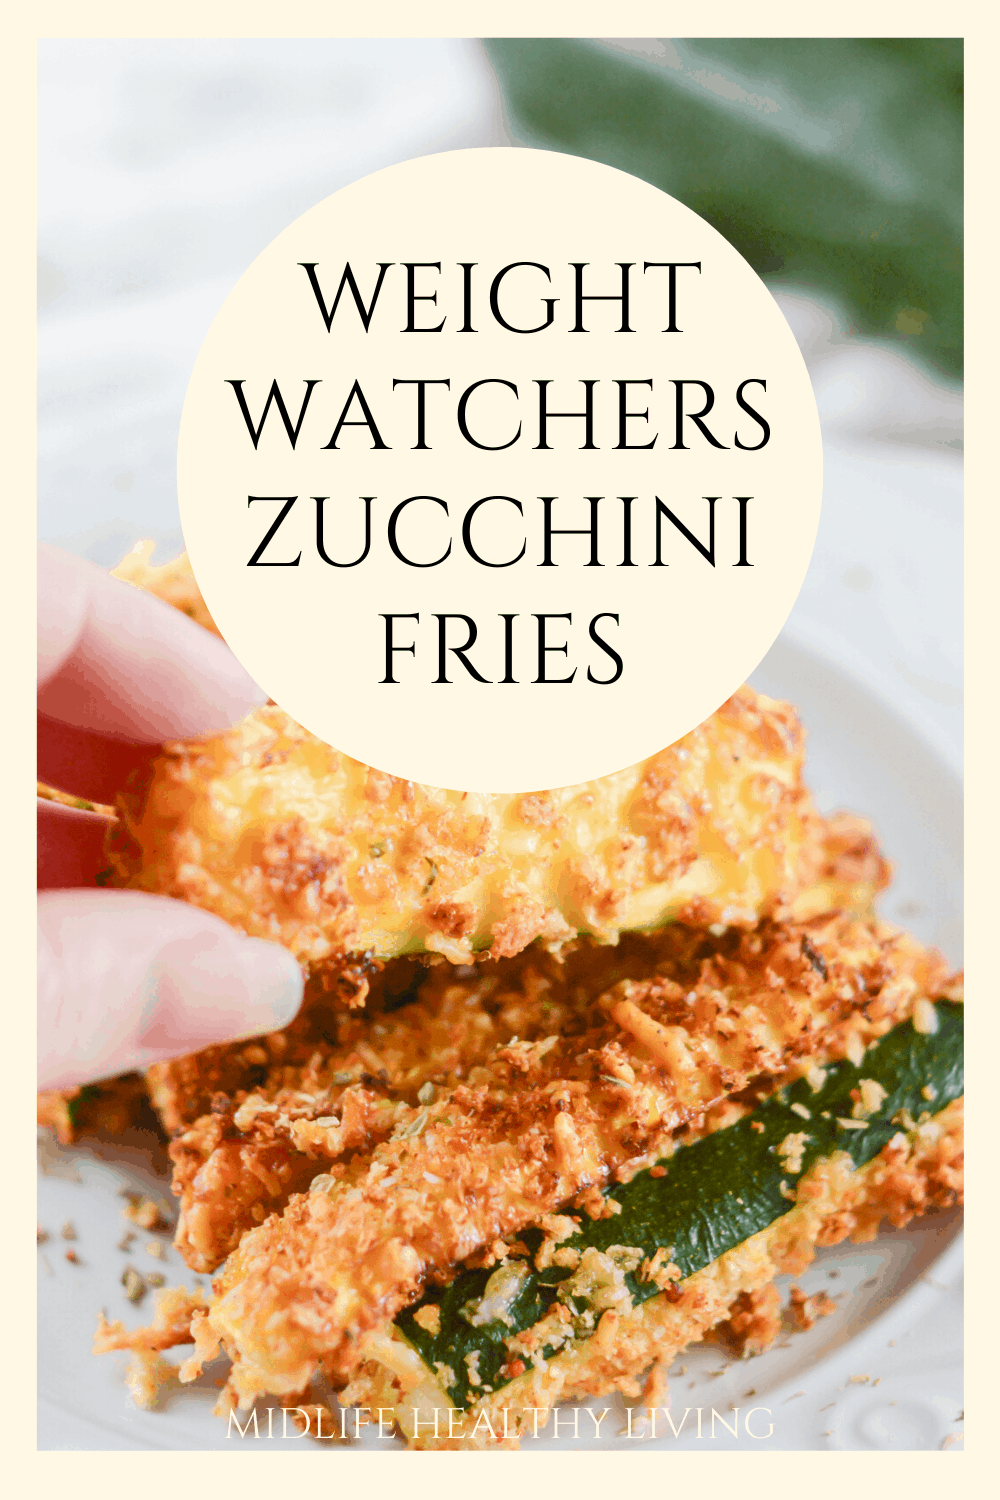 Weight Watchers zucchini fries recipe finished and ready to be shared, showing pin with title in the middle.